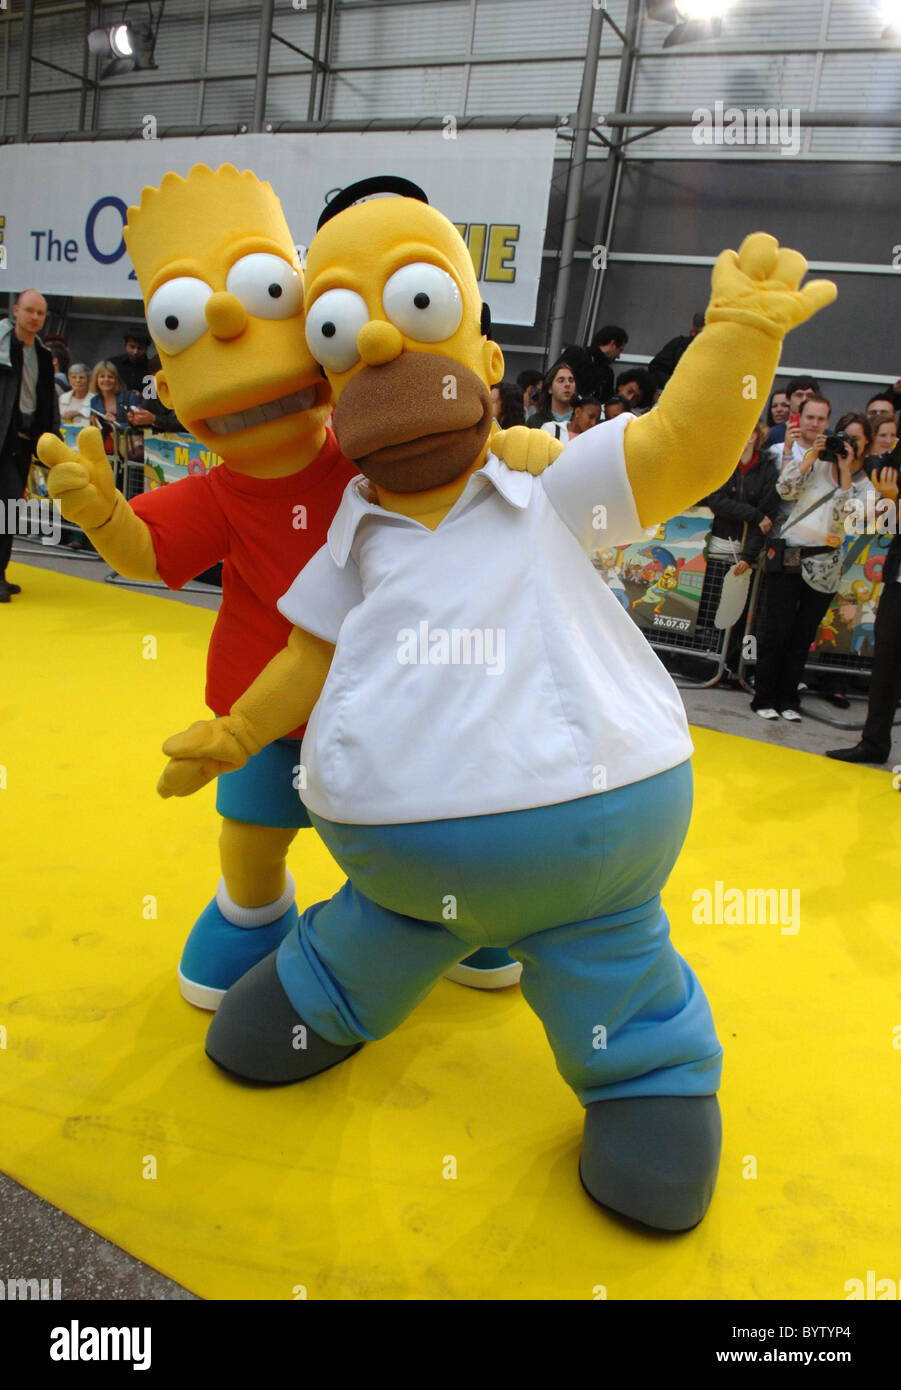 Bart Simpson And Homer Simpson The Simpsons Movie Uk Premiere At Stock Photo Alamy